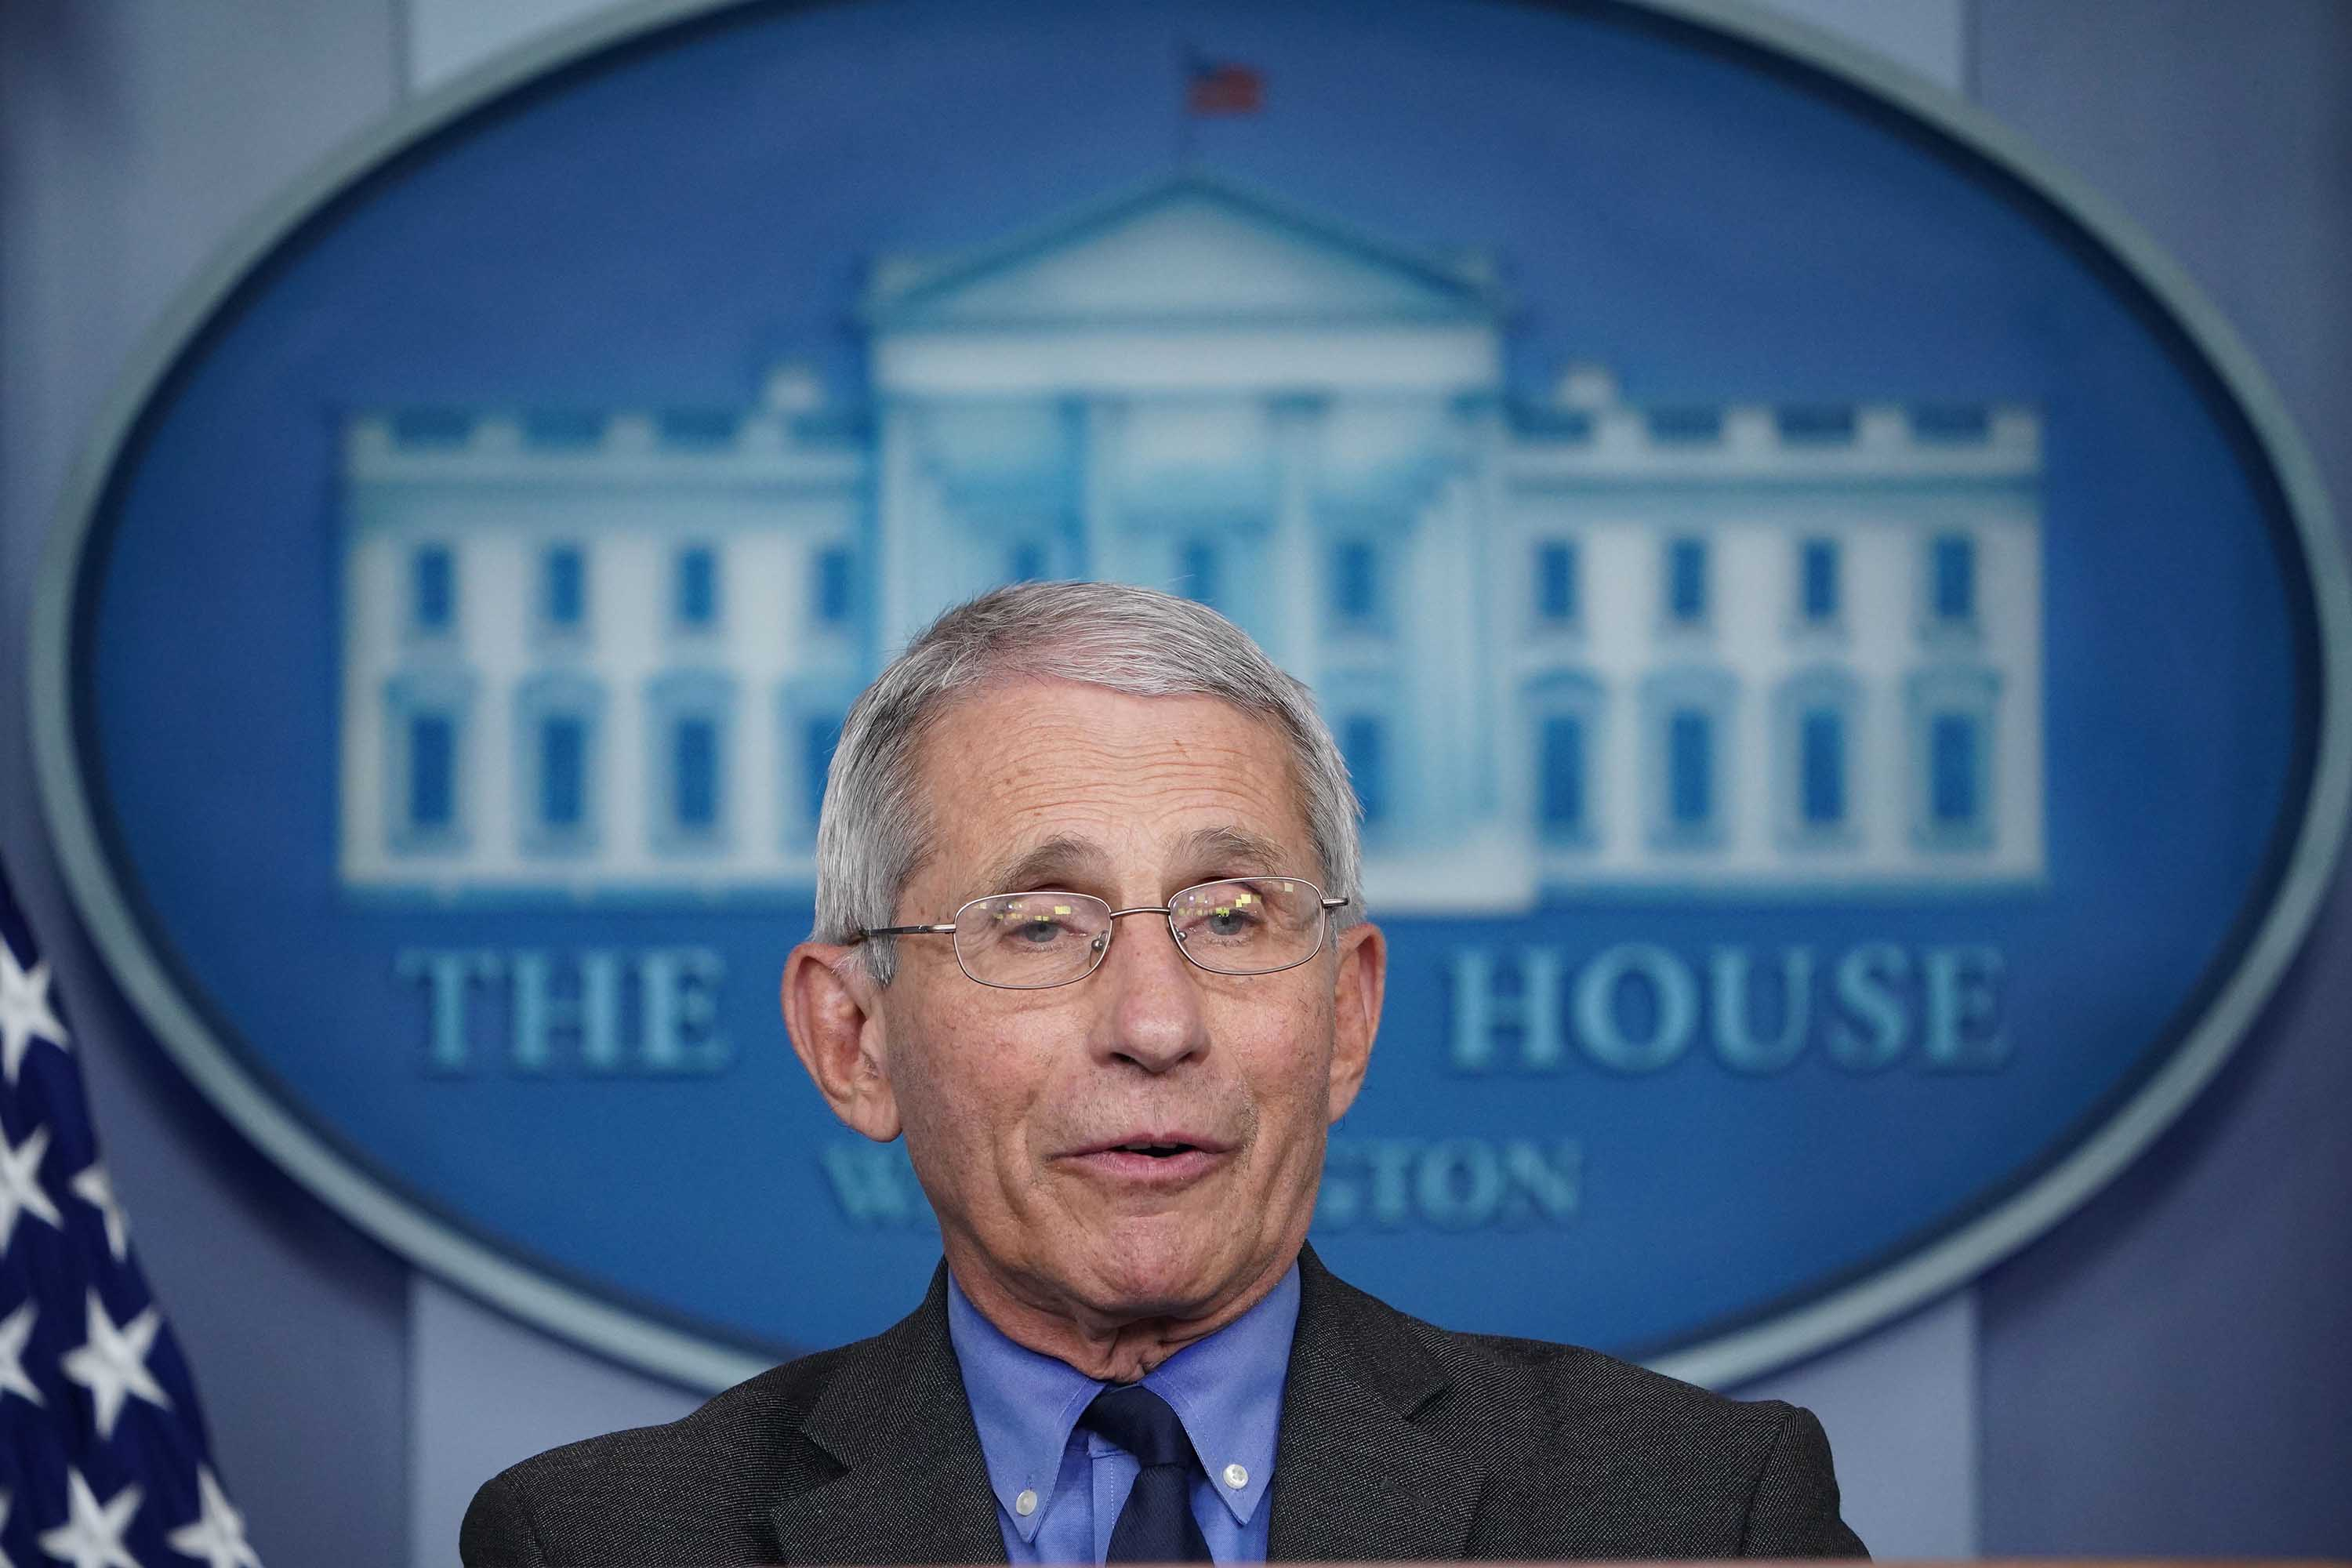 Director of the National Institute of Allergy and Infectious Diseases Anthony Fauci speaks during the daily briefing on the novel coronavirus at the White House on April 13.